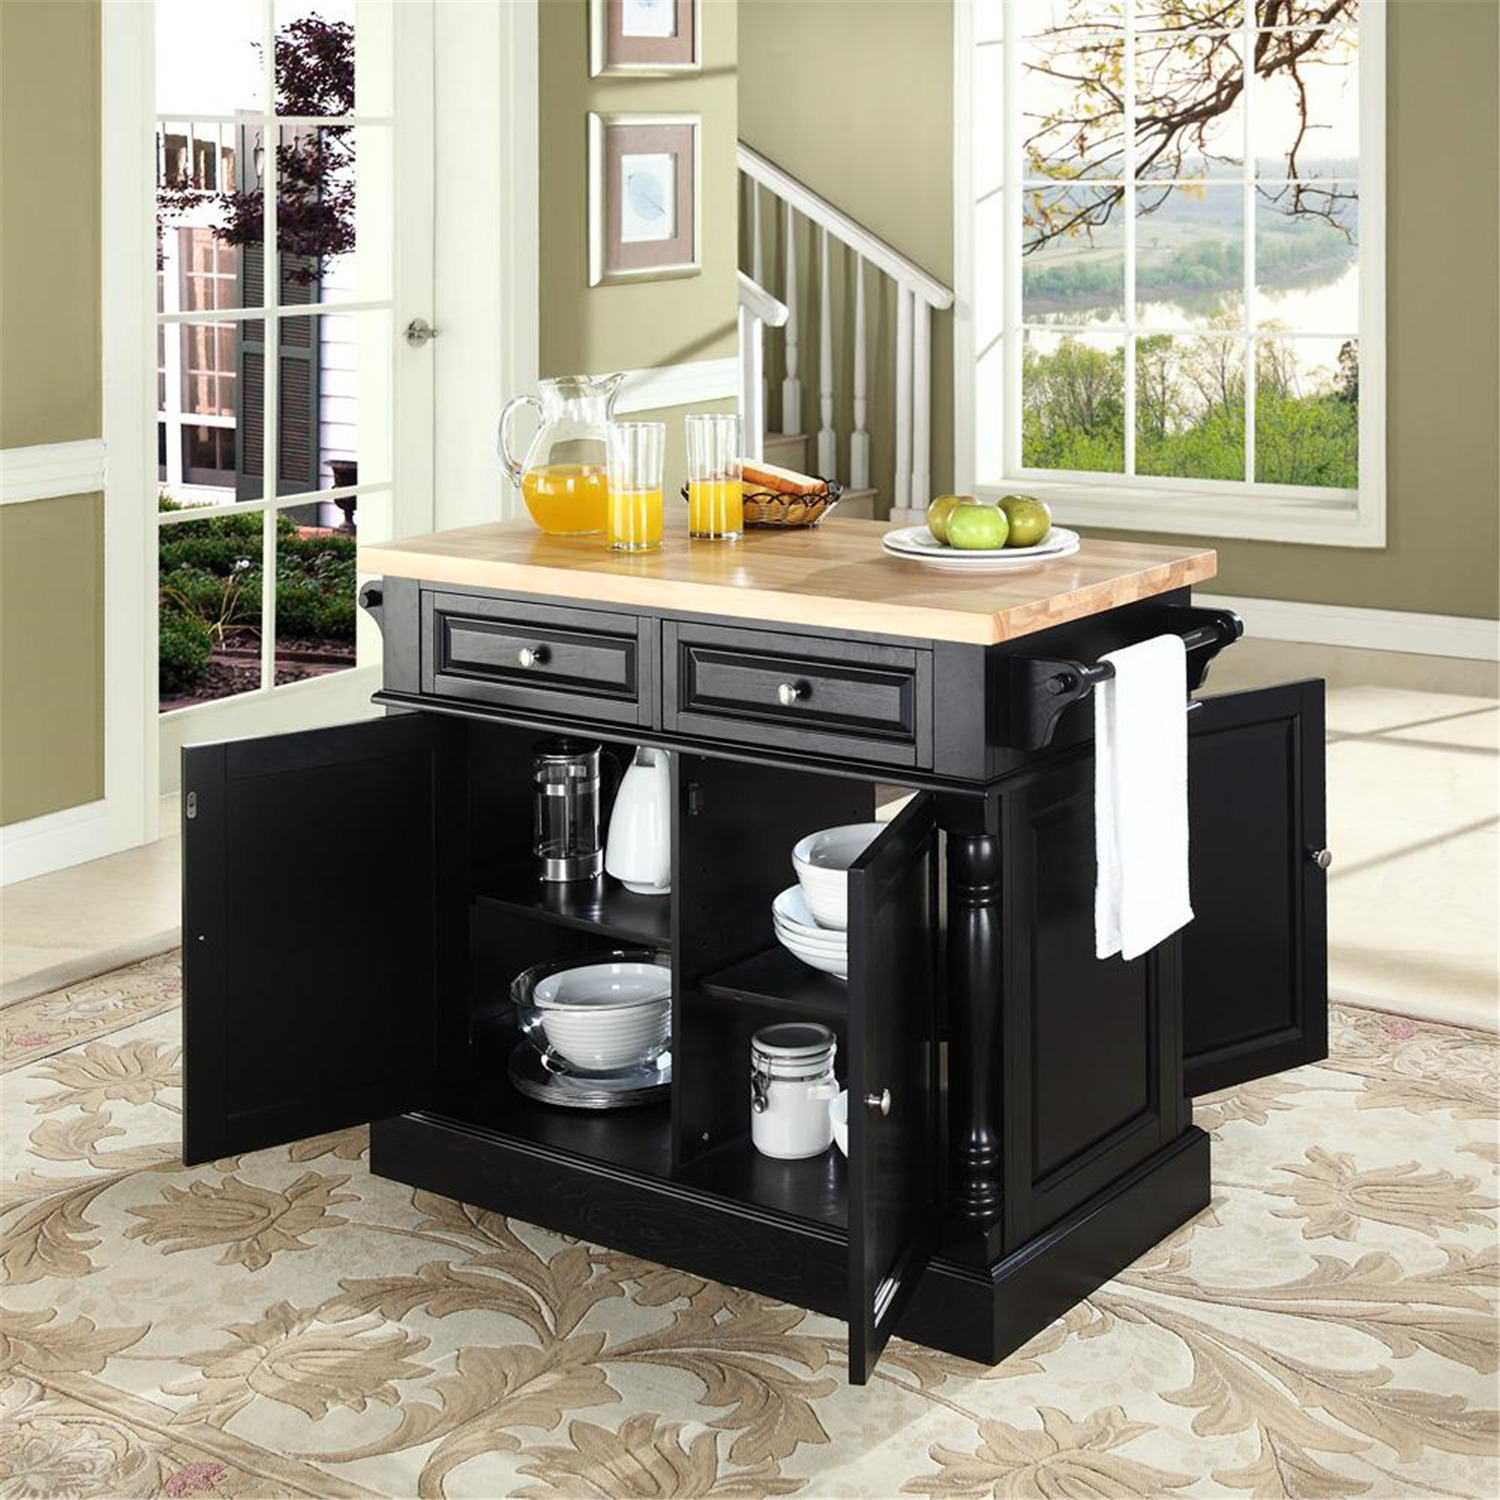 large white kitchen island sink cabinet size butcher block - from $551.48 to $960.99 ...